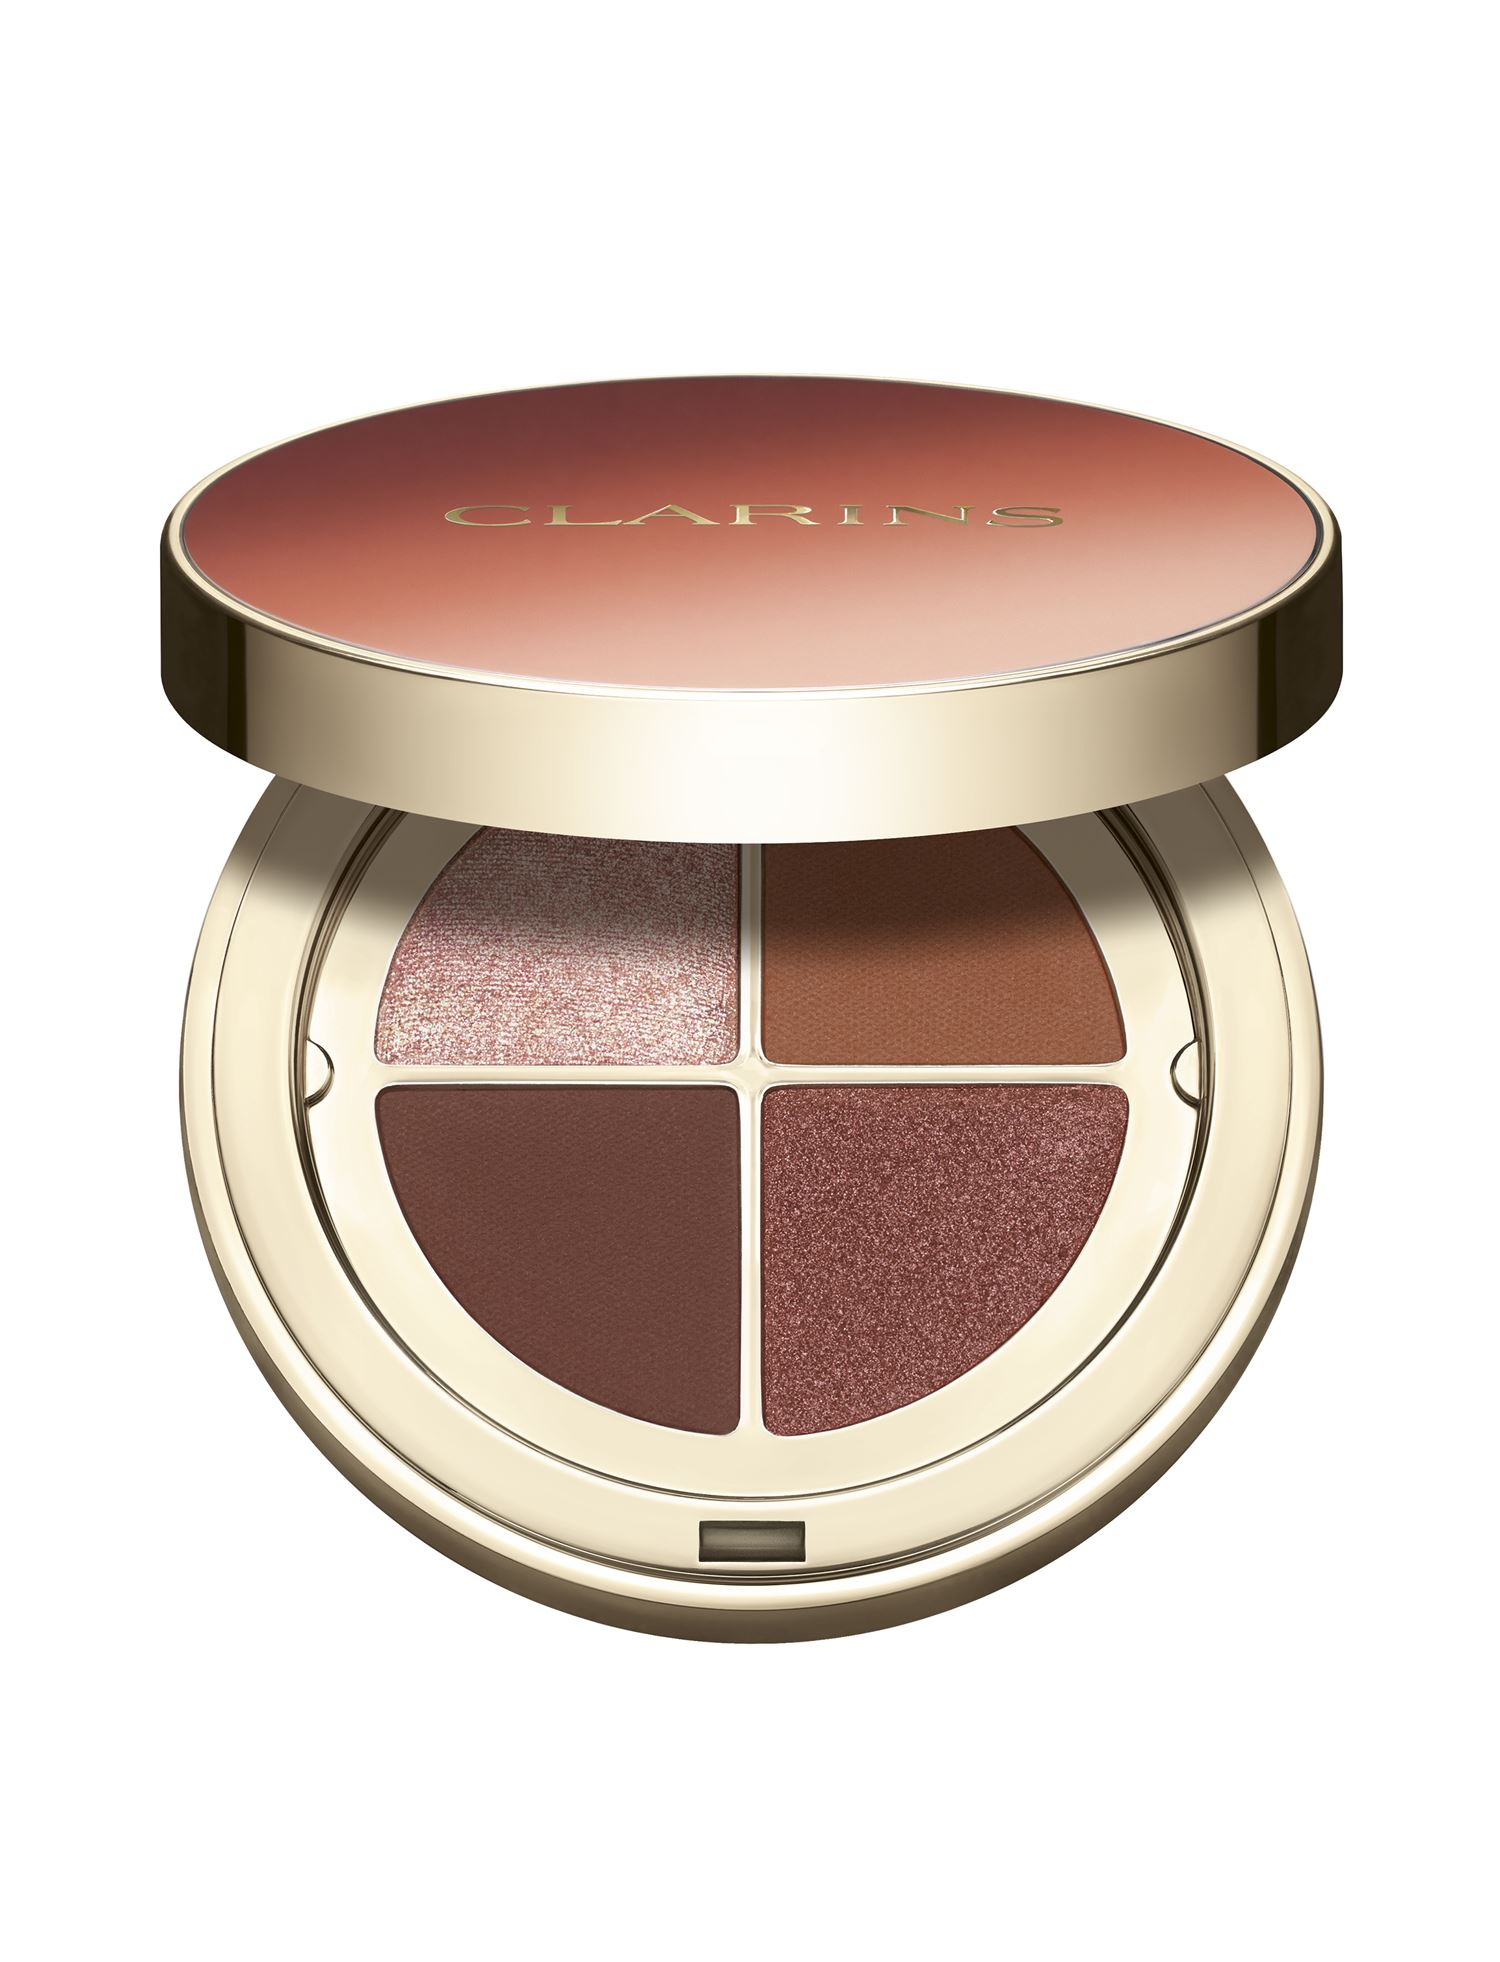 Clarins 4-Colour Eyeshadow Palette, 03 flame